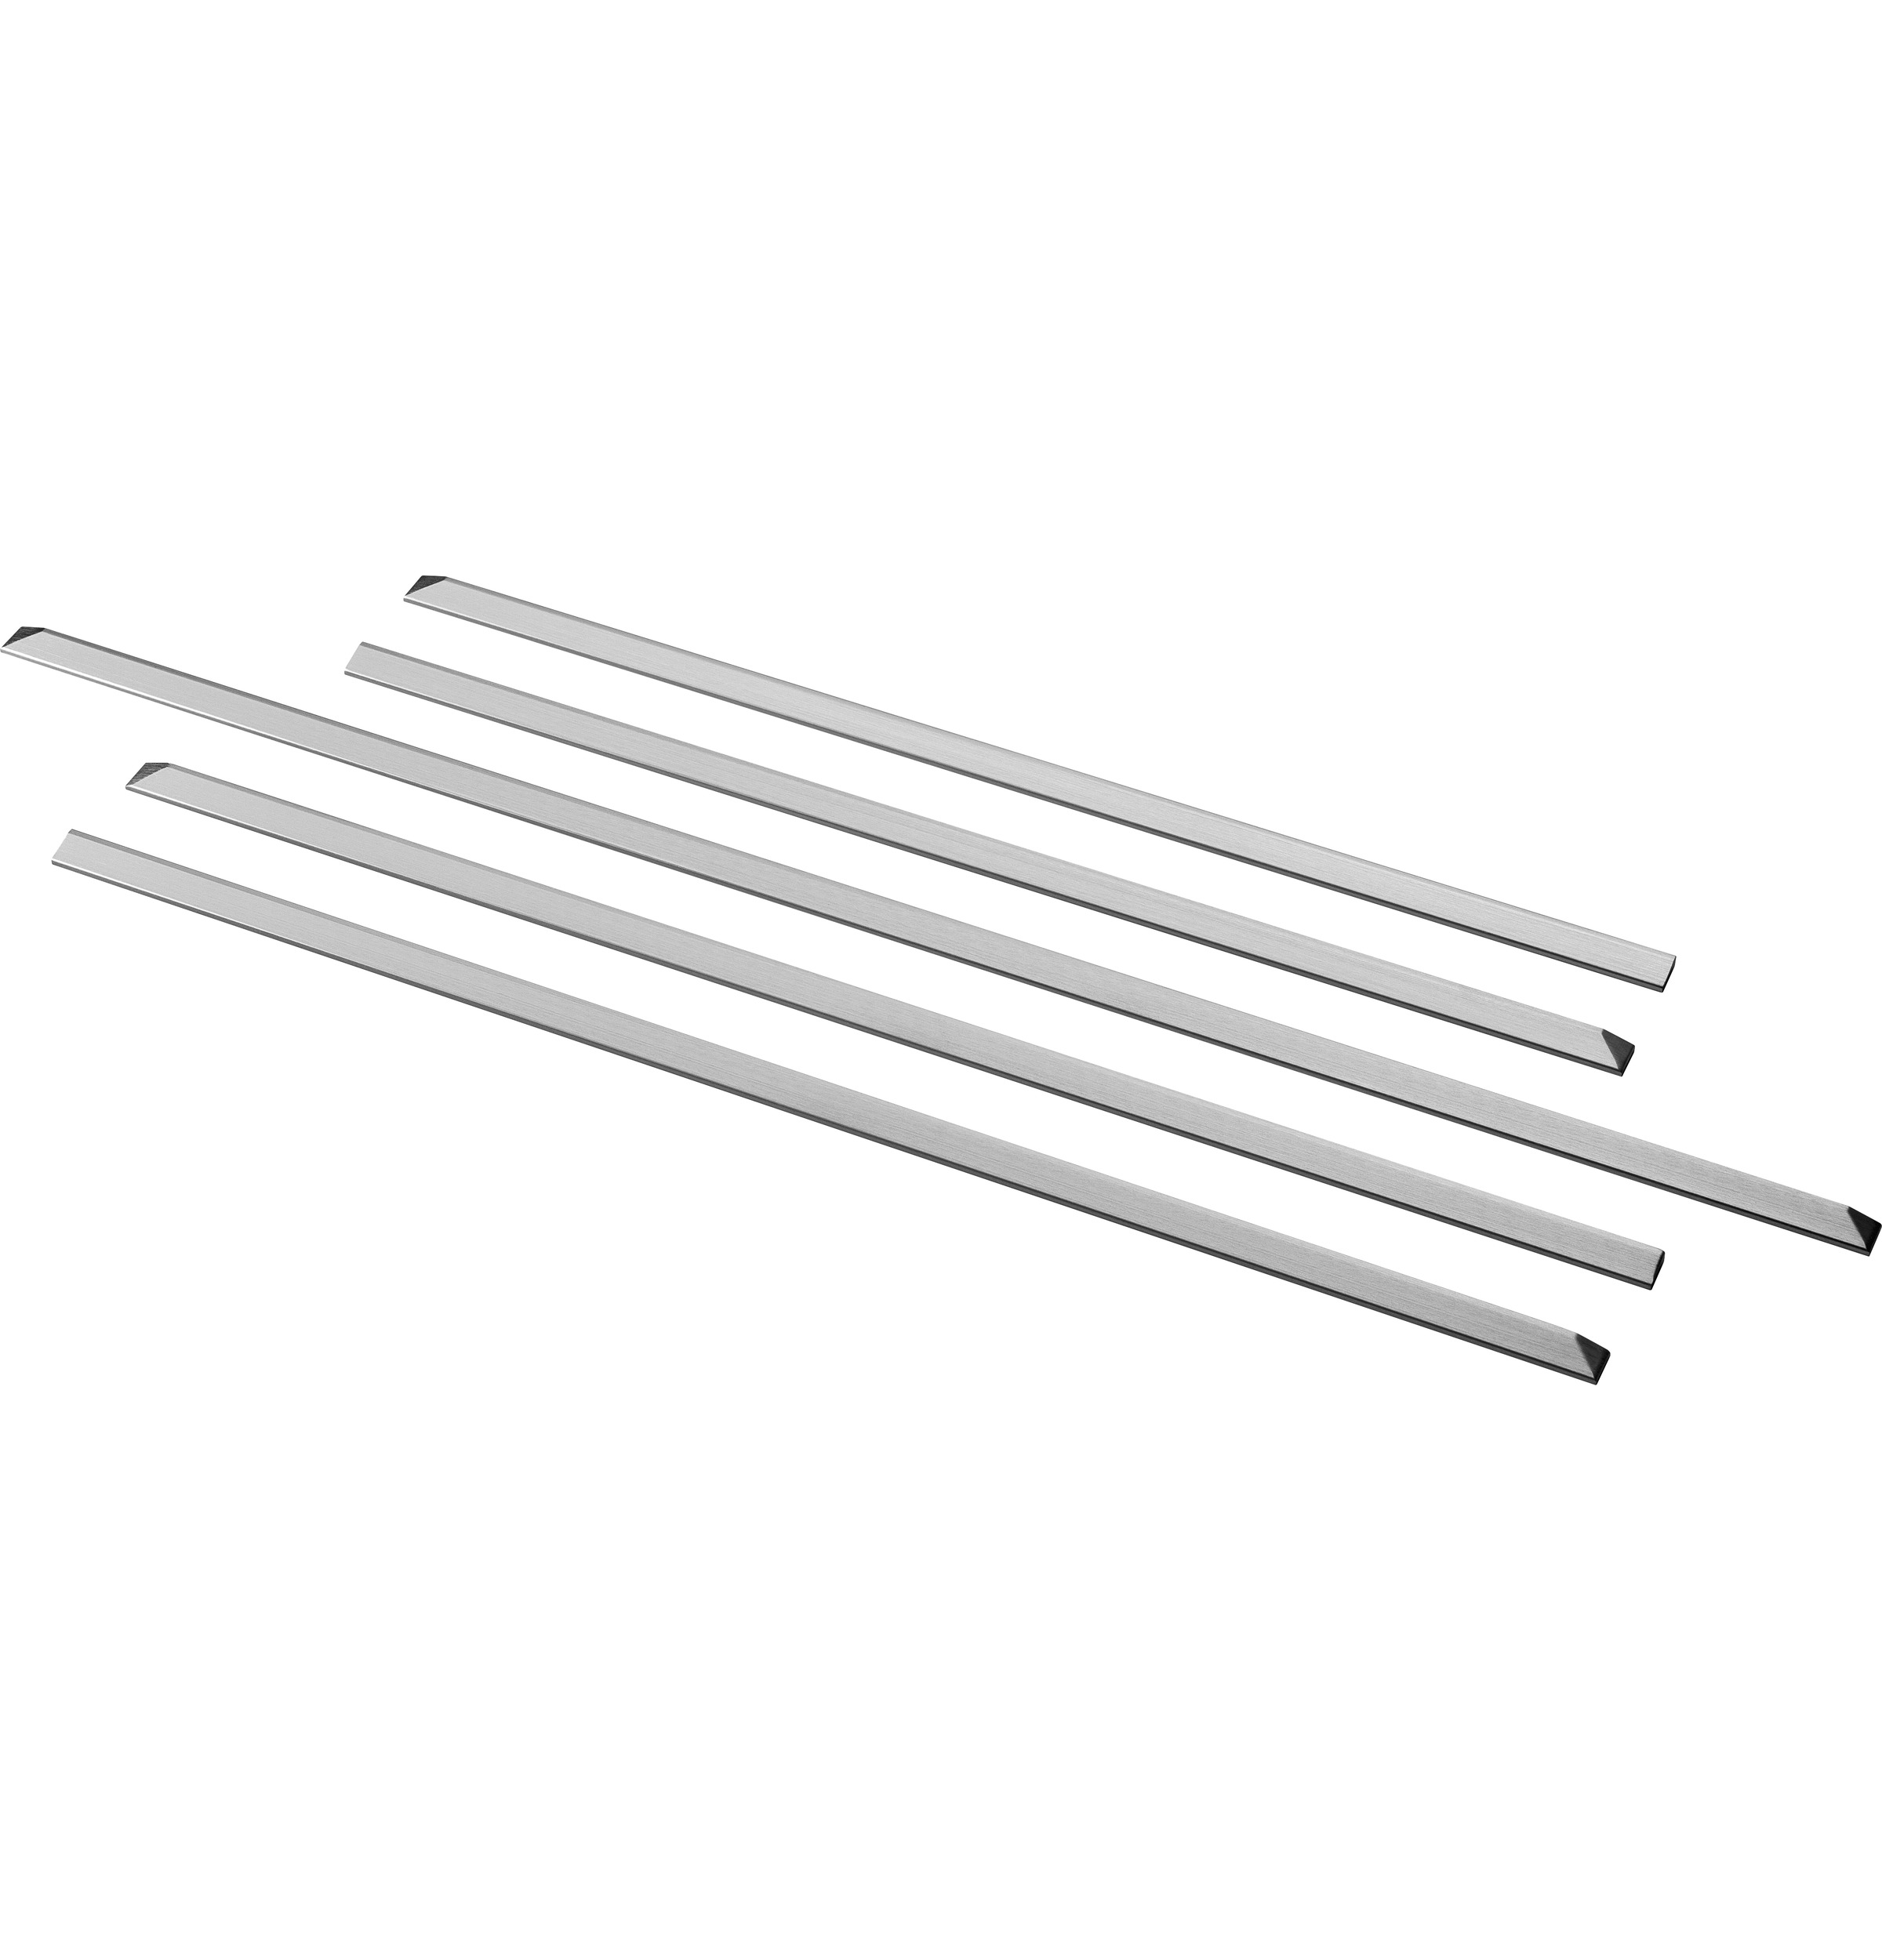 GE Slide-in Range Filler Kit - Stainless Steel